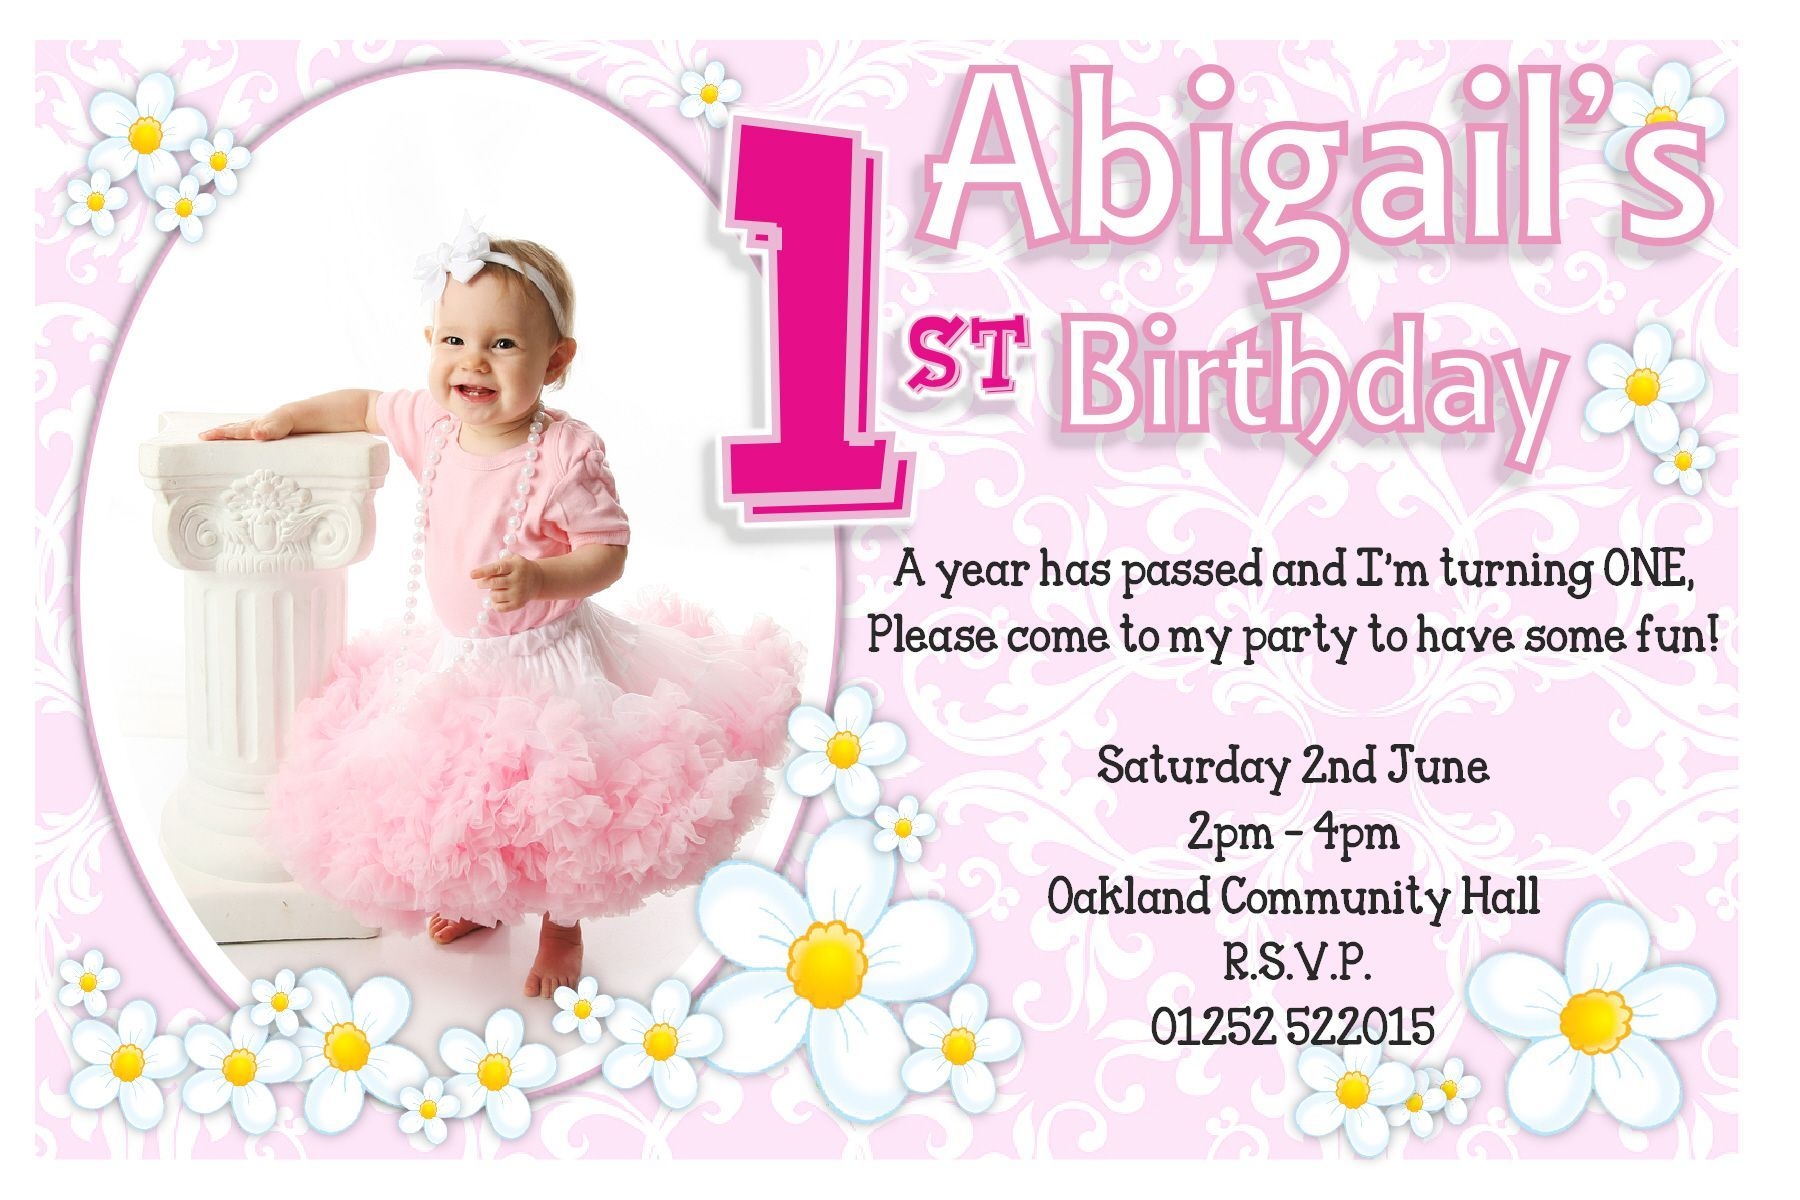 Girls First 1st Birthday Party Photo Invitations N27 11350 P With Amazing Decor And First Birthday Party Invitation Wording Jpg 1800 1200